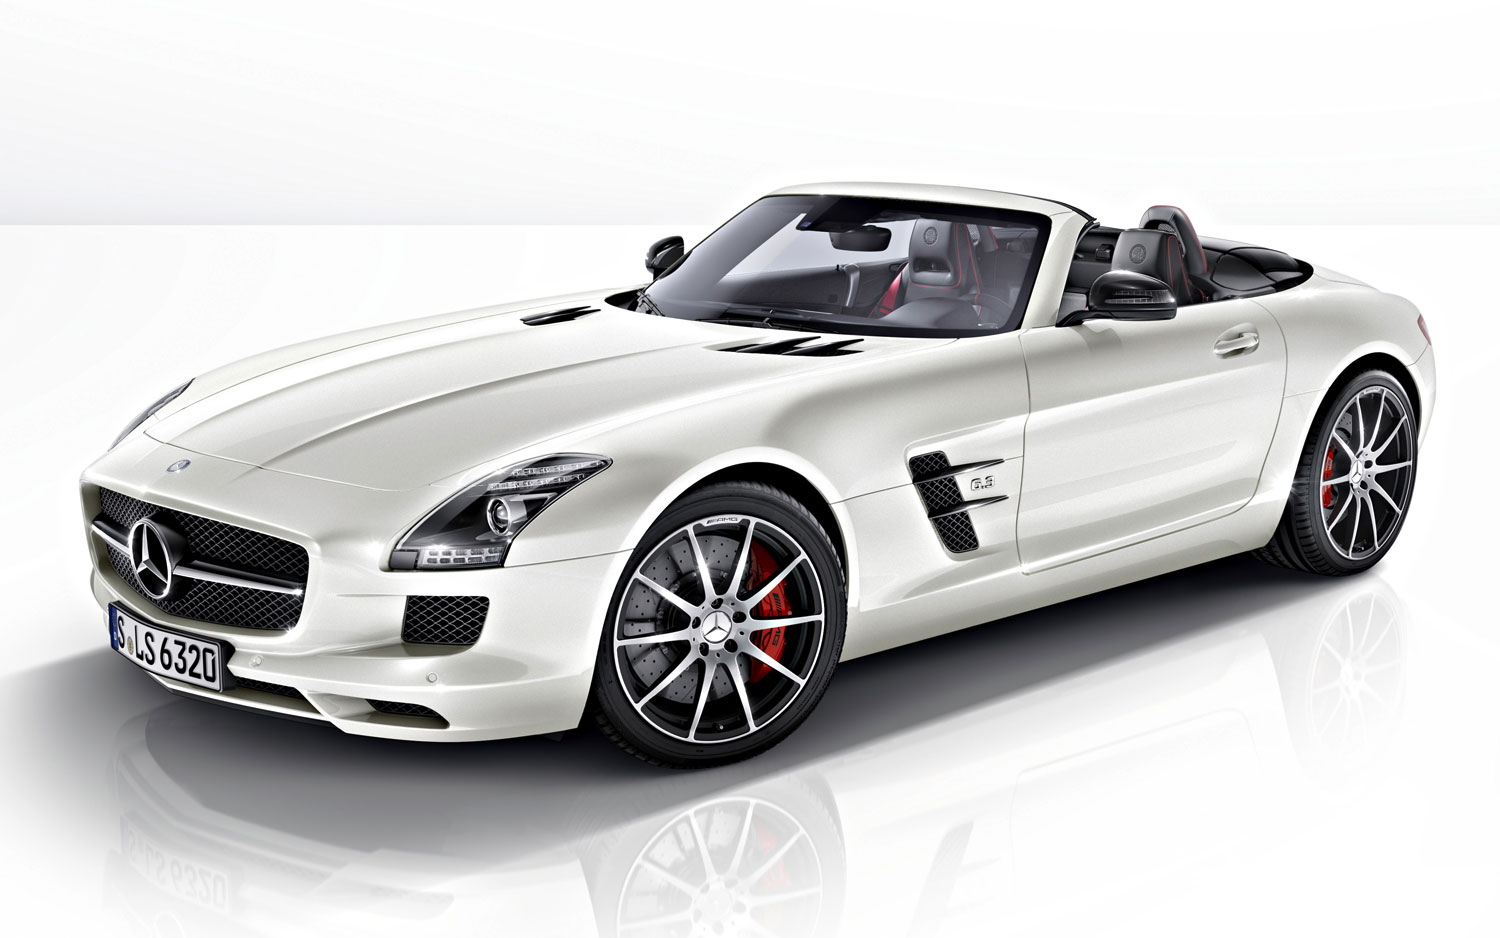 Alfa img showing gt sls amg gt roadster interior - Zach Gale